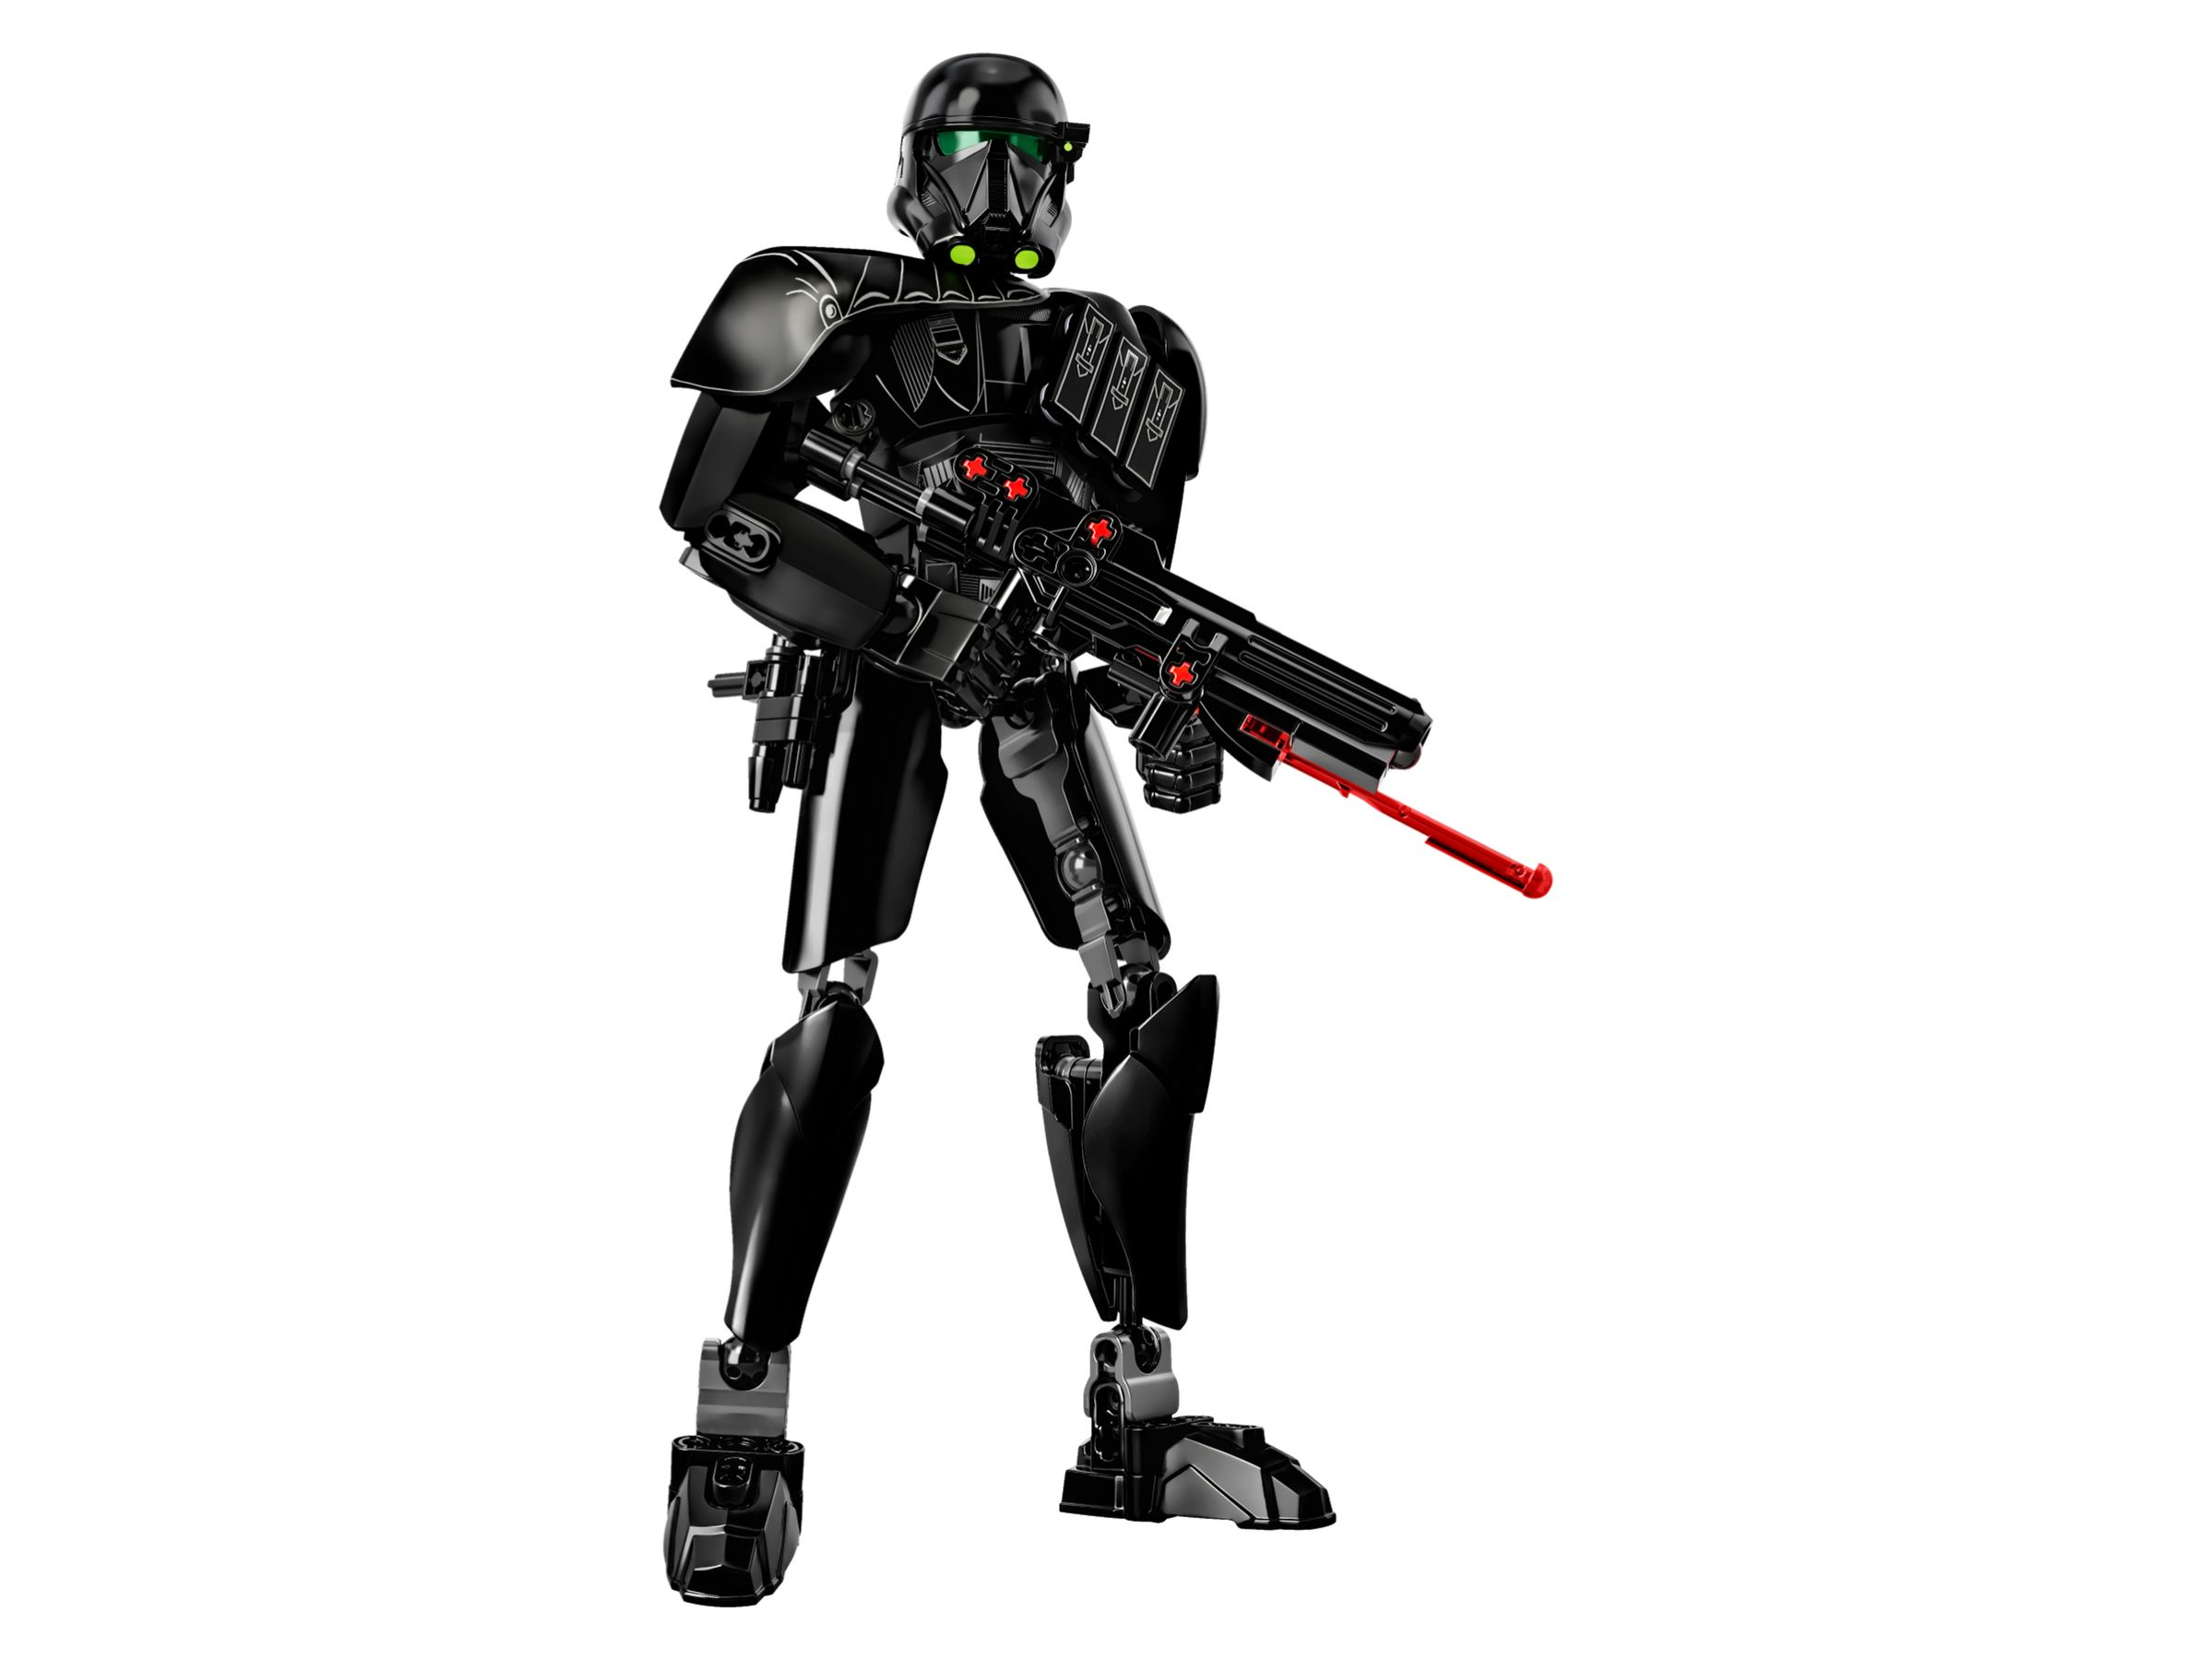 LEGO Star Wars Buildable Figures 75121 Imperial Death Trooper™ LEGO_75121_alt2.jpg